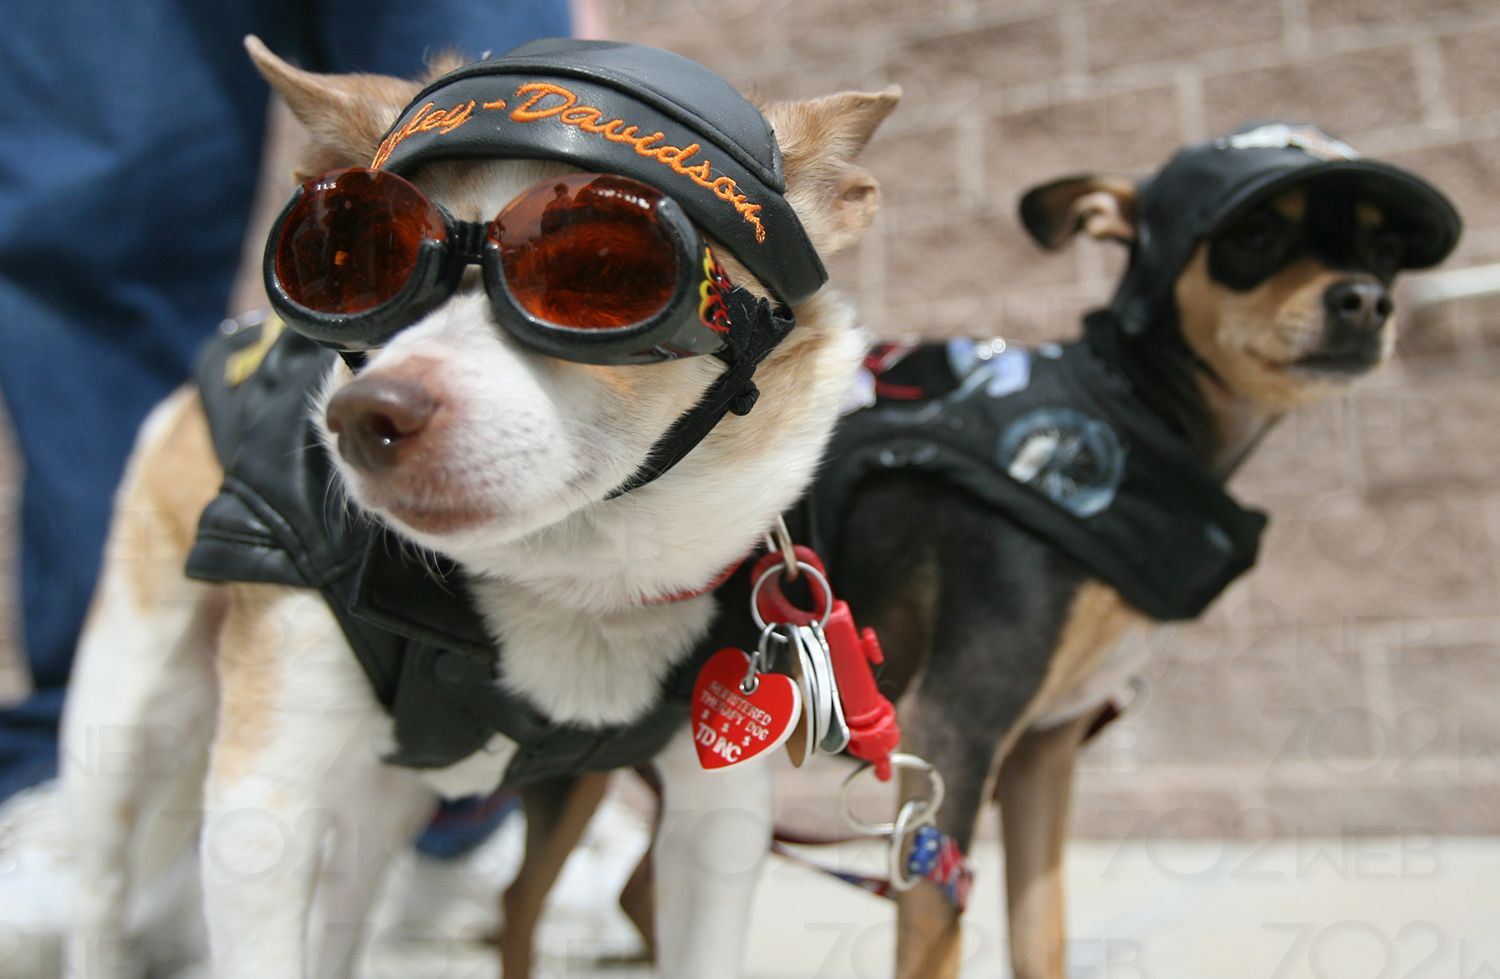 Cats are cool n all, but dogs w/ sunglasses are BADASS